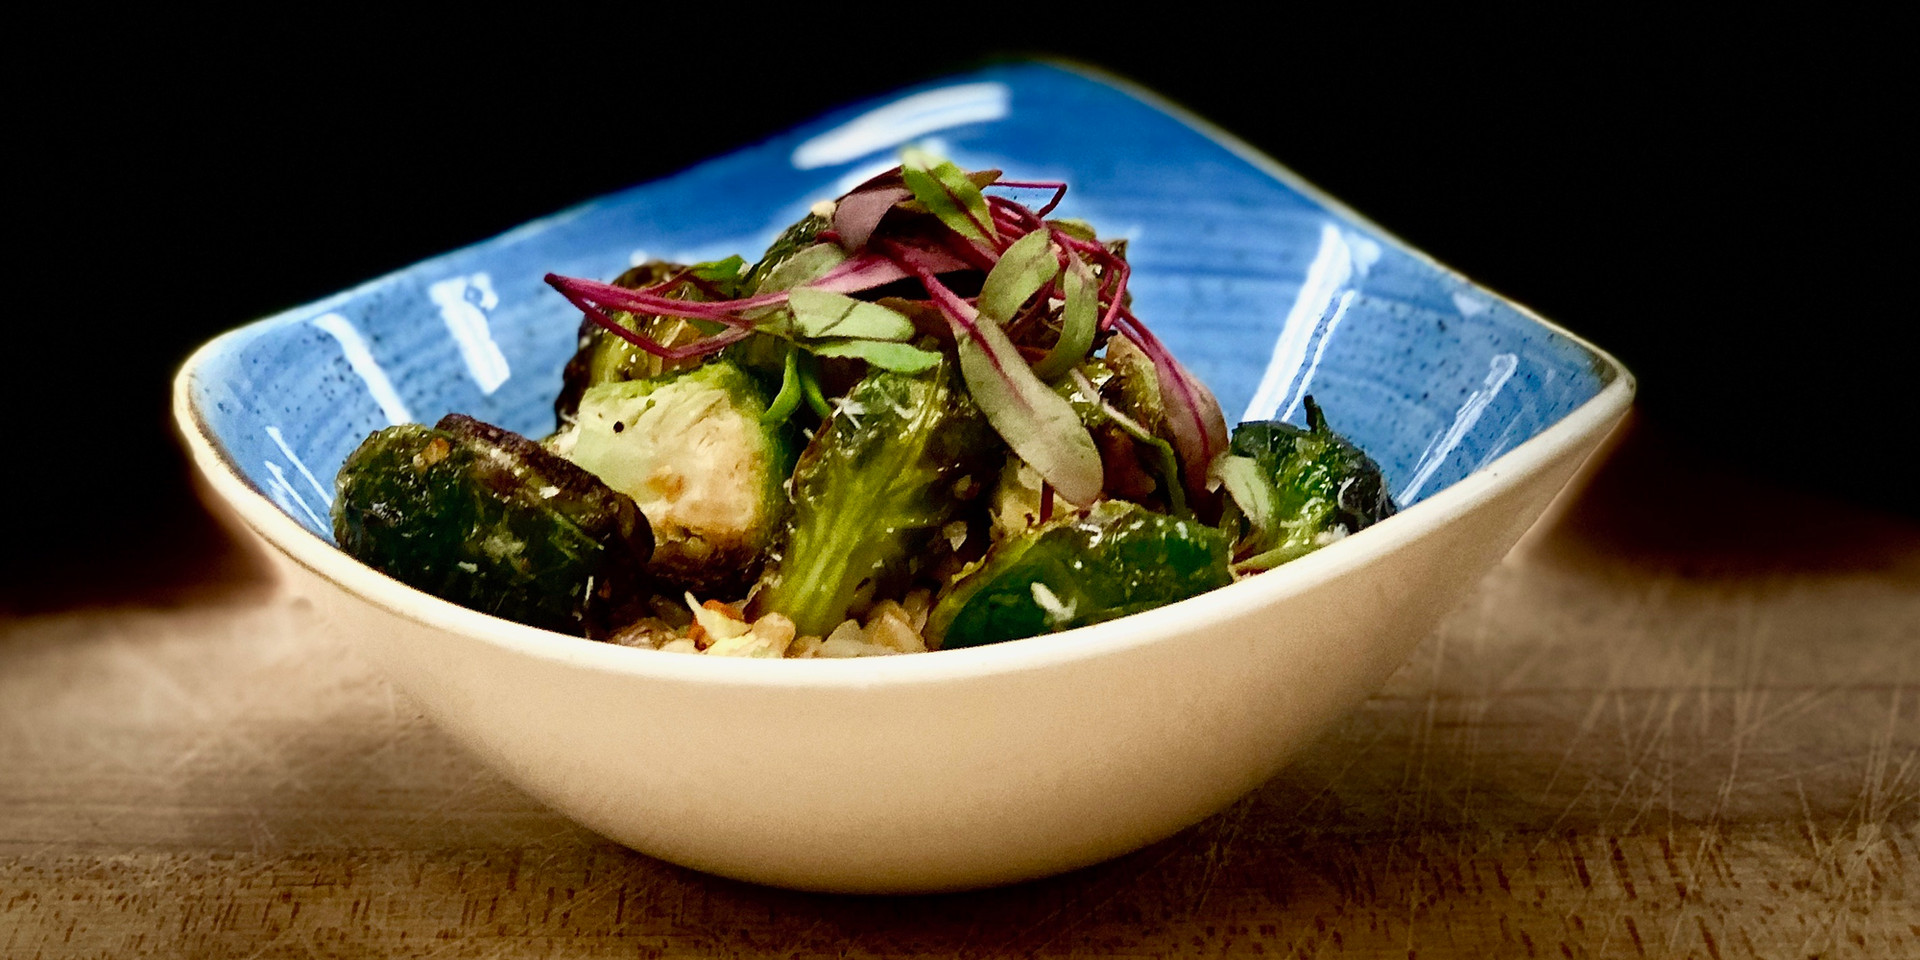 Roasted Brussel Sprouts over Farro Risotto